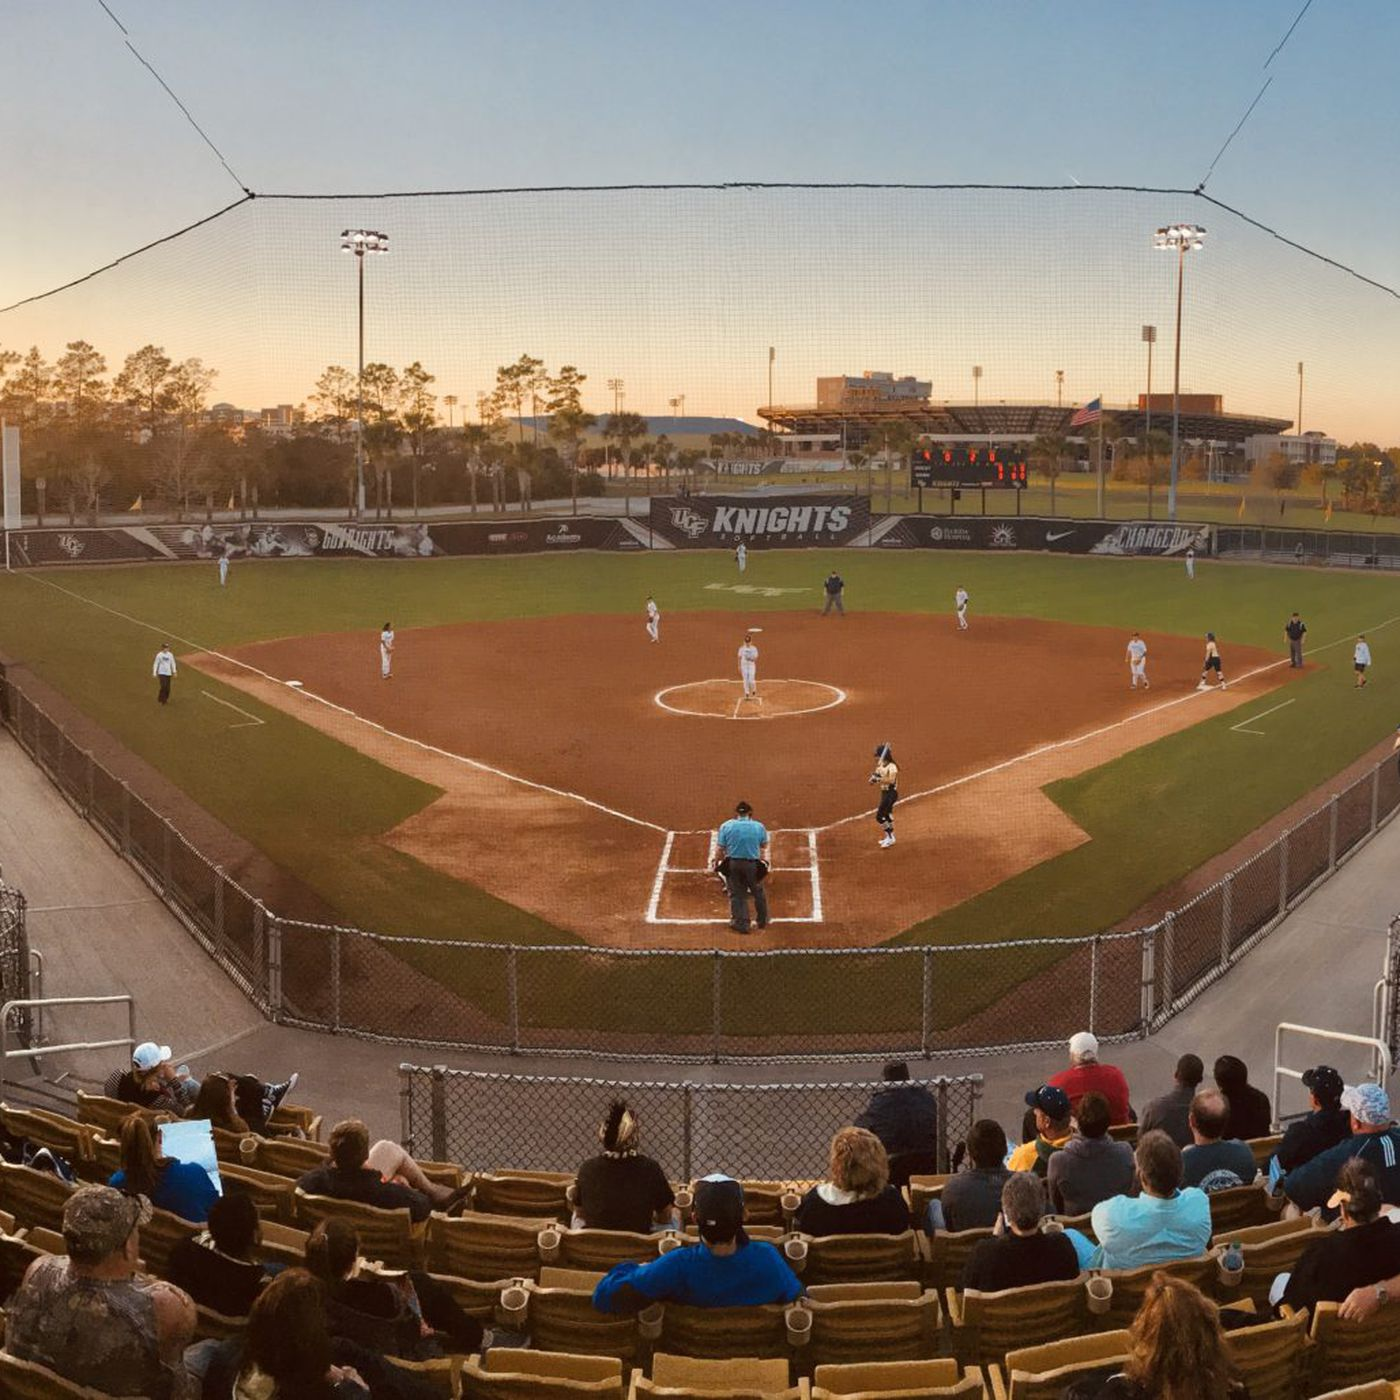 06af6e364fcf WHITE-OUT  Alea White Deals Complete Game No-Hitter for UCF Knights  Softball - Black   Gold Banneret